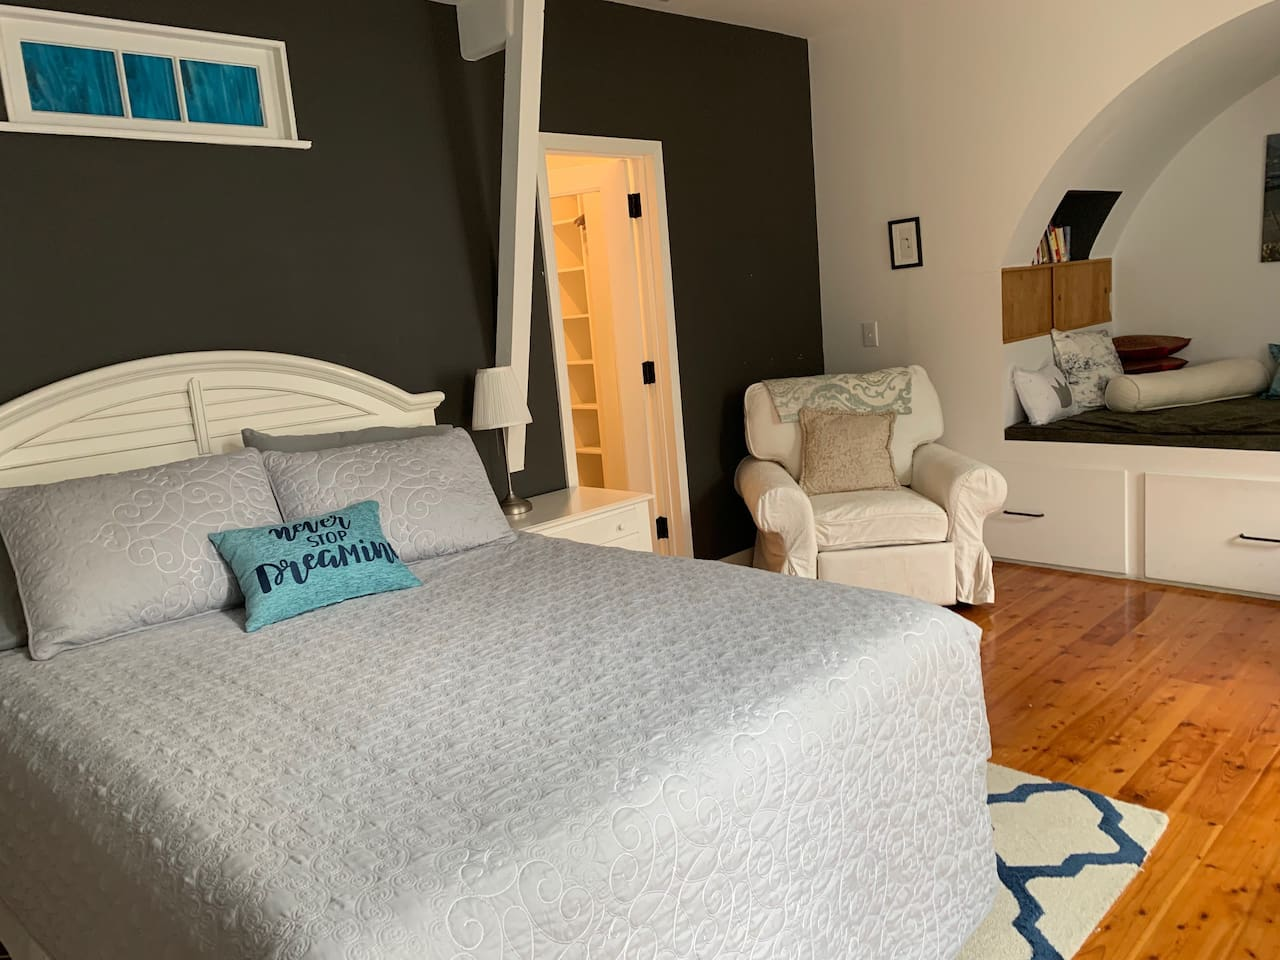 Comfortable queen bed, with bonus relaxation space. Large walk-in wardrobe, leading to en-suite bathroom. Many of our guests comment that the pictures don't accurately represent how spacious the room really is :)